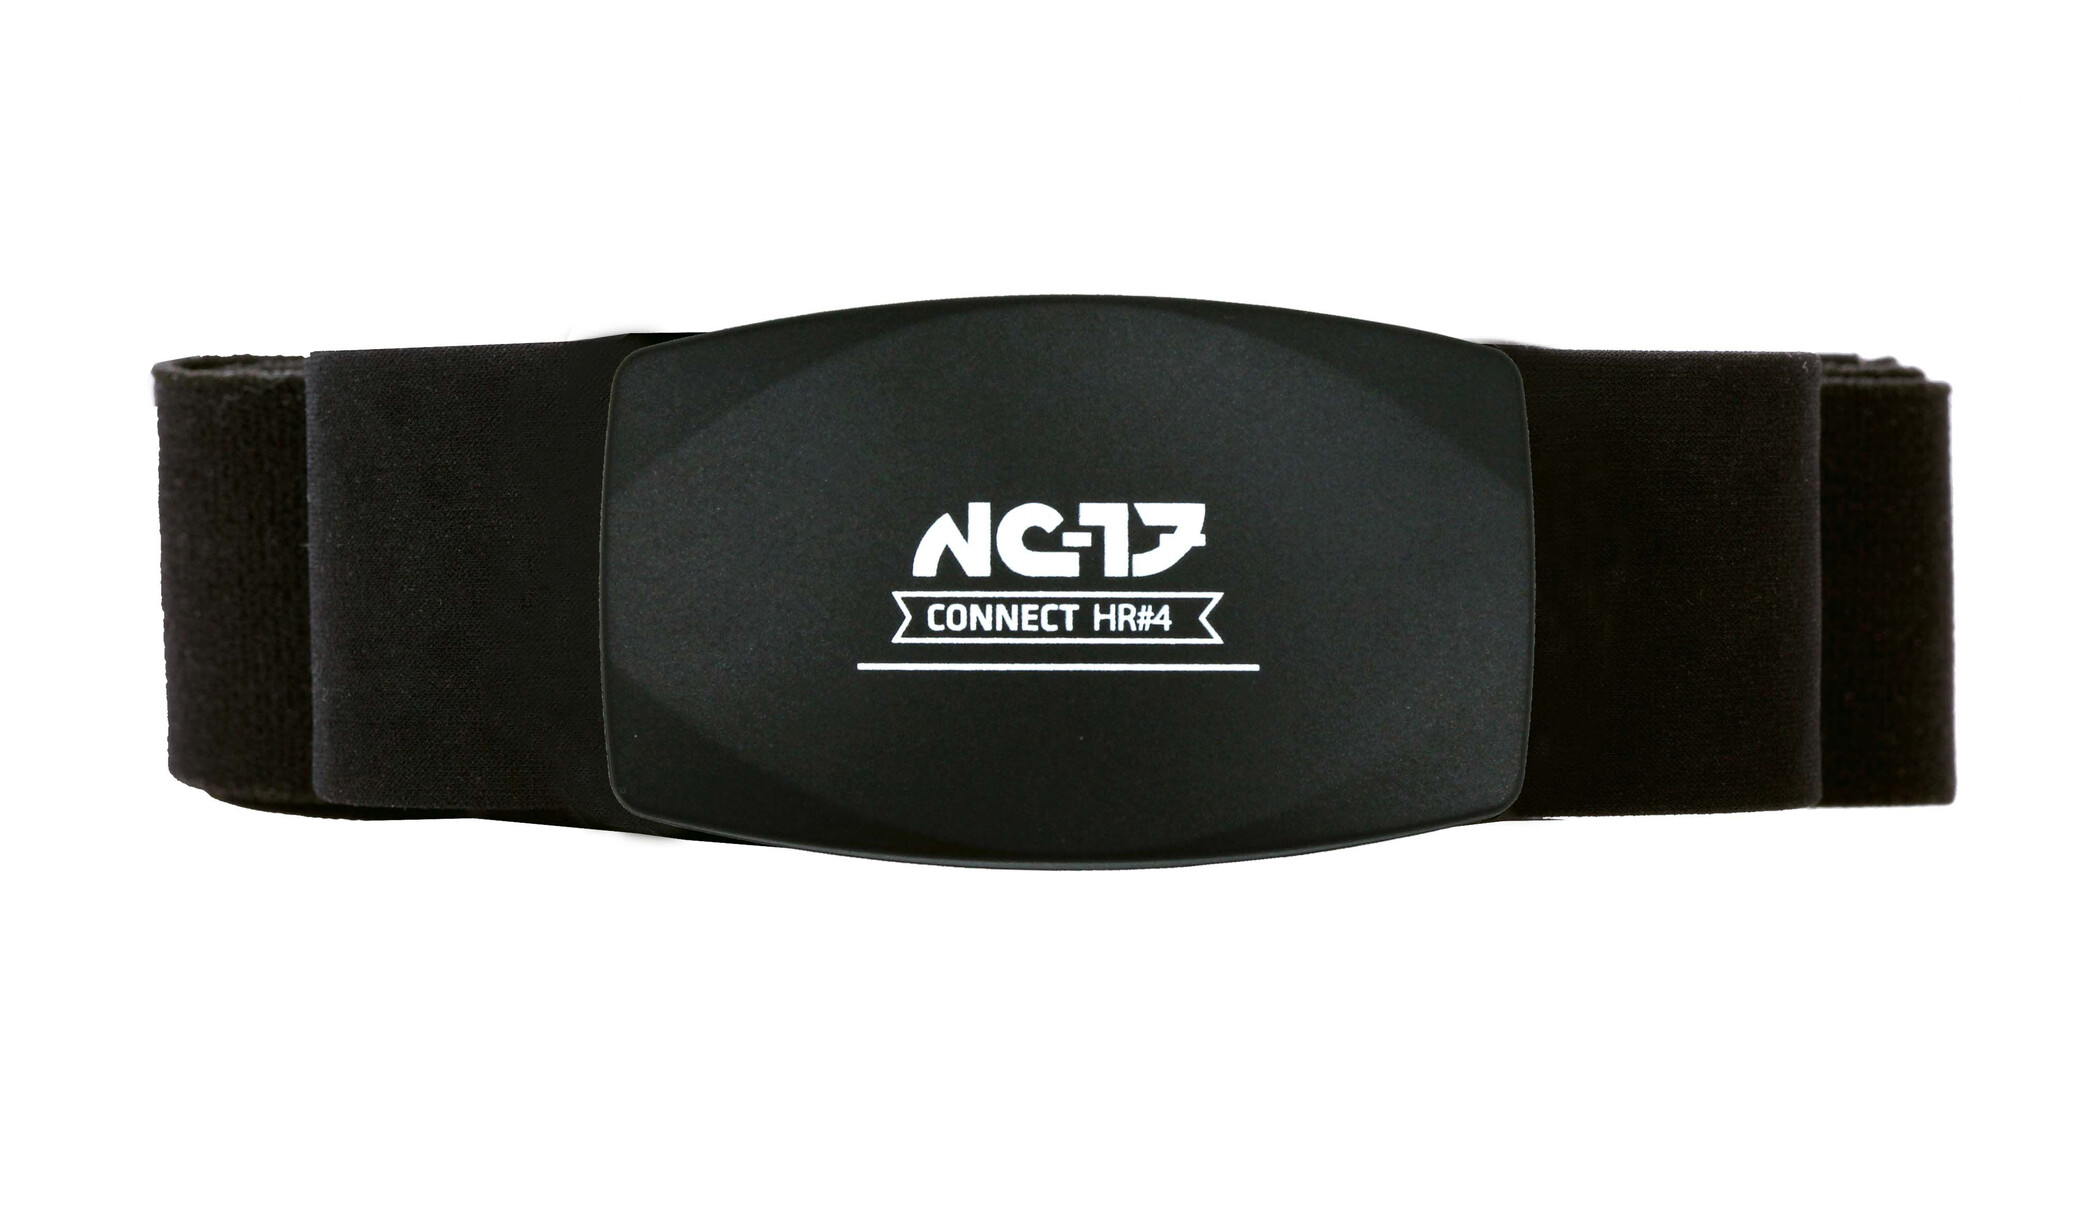 NC-17 Connect HR4 Pulsbælte ANT + og Bluetooth 4.0 | Heart rate monitors